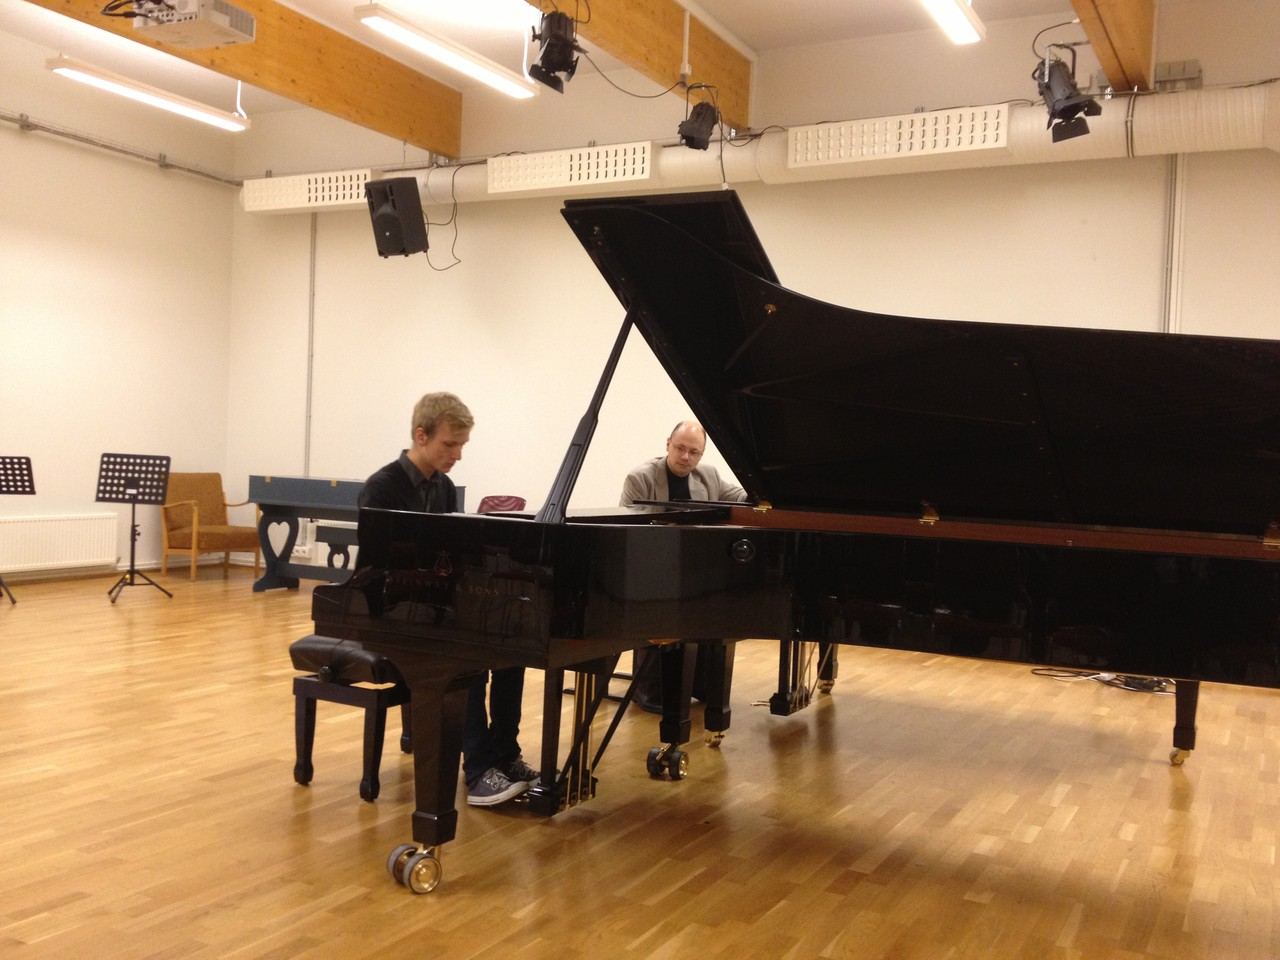 Masterclass Piano, Iceland Academy of the Arts, Reykjavík, 2012 (Photo: privat)